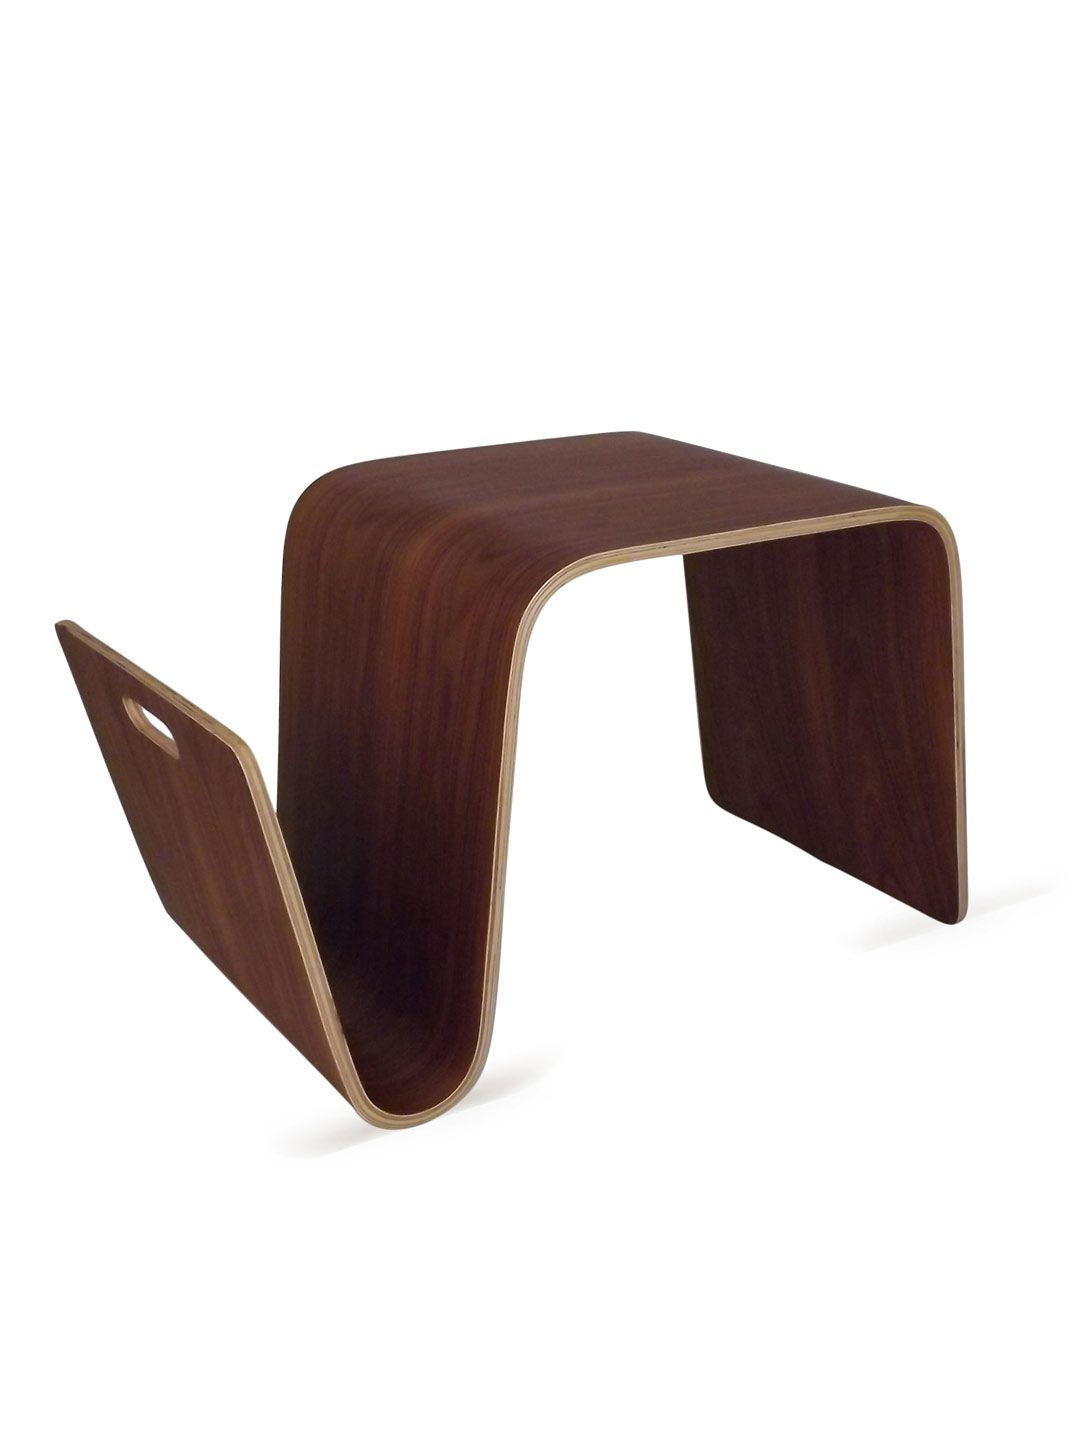 Bentwood Side Table By Control Brand At Gilt Control Brand Furniture Side Table